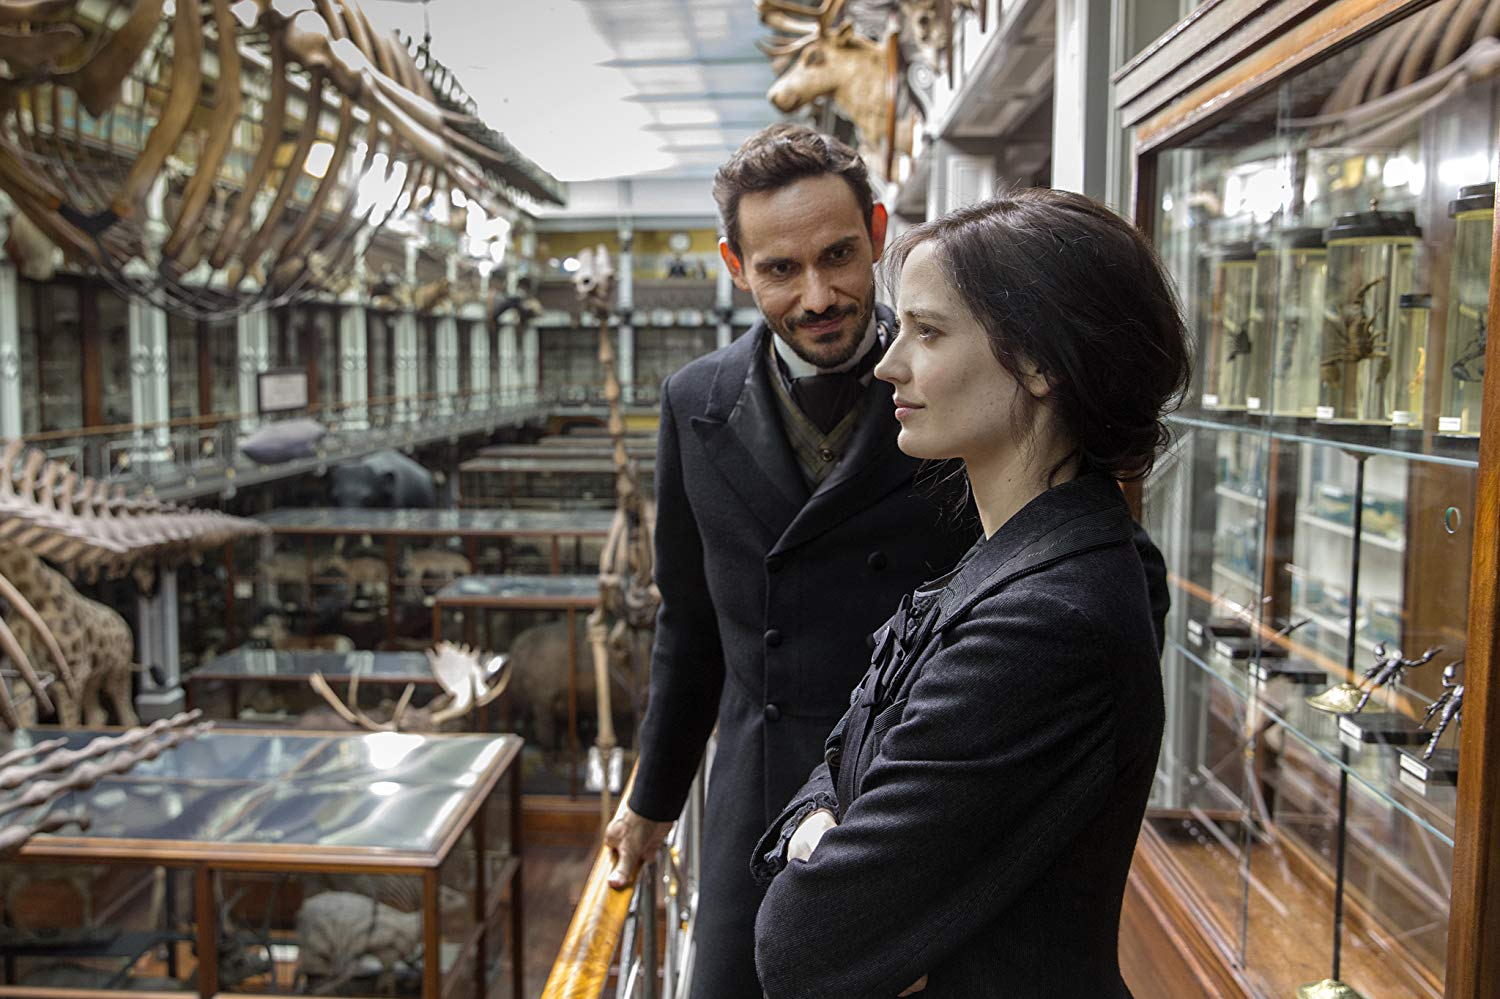 How Many Episodes & Seasons In 'Penny Dreadful'